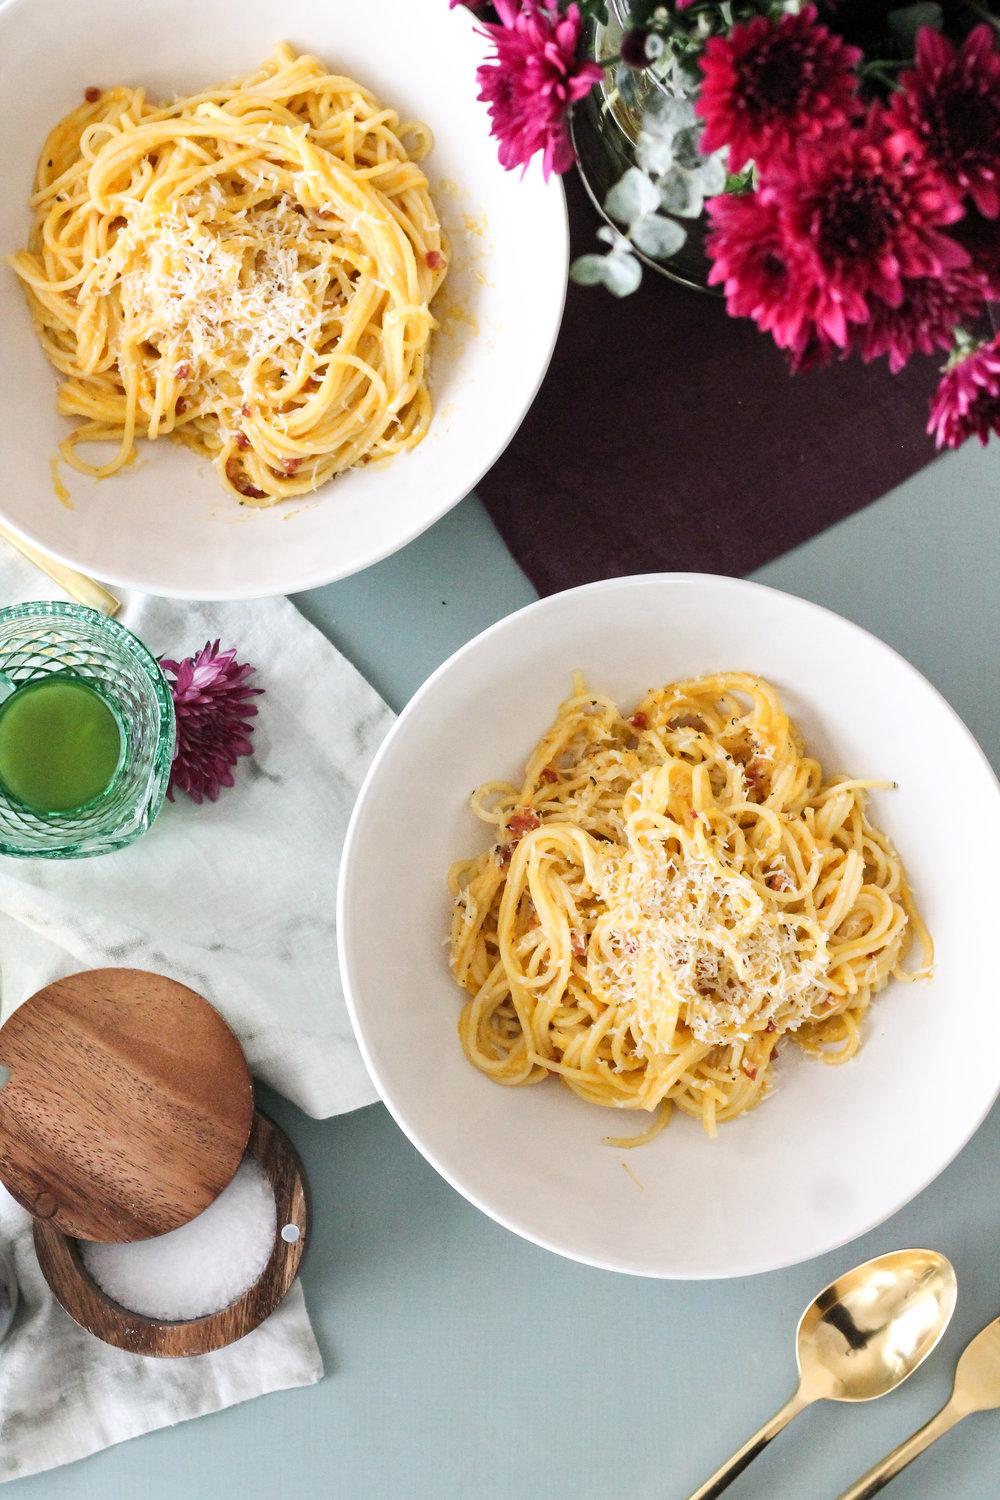 Classic carbonara is taken to the next level of dreamy when creamy butternut squash is added! [ www.pedanticfoodie.com ]